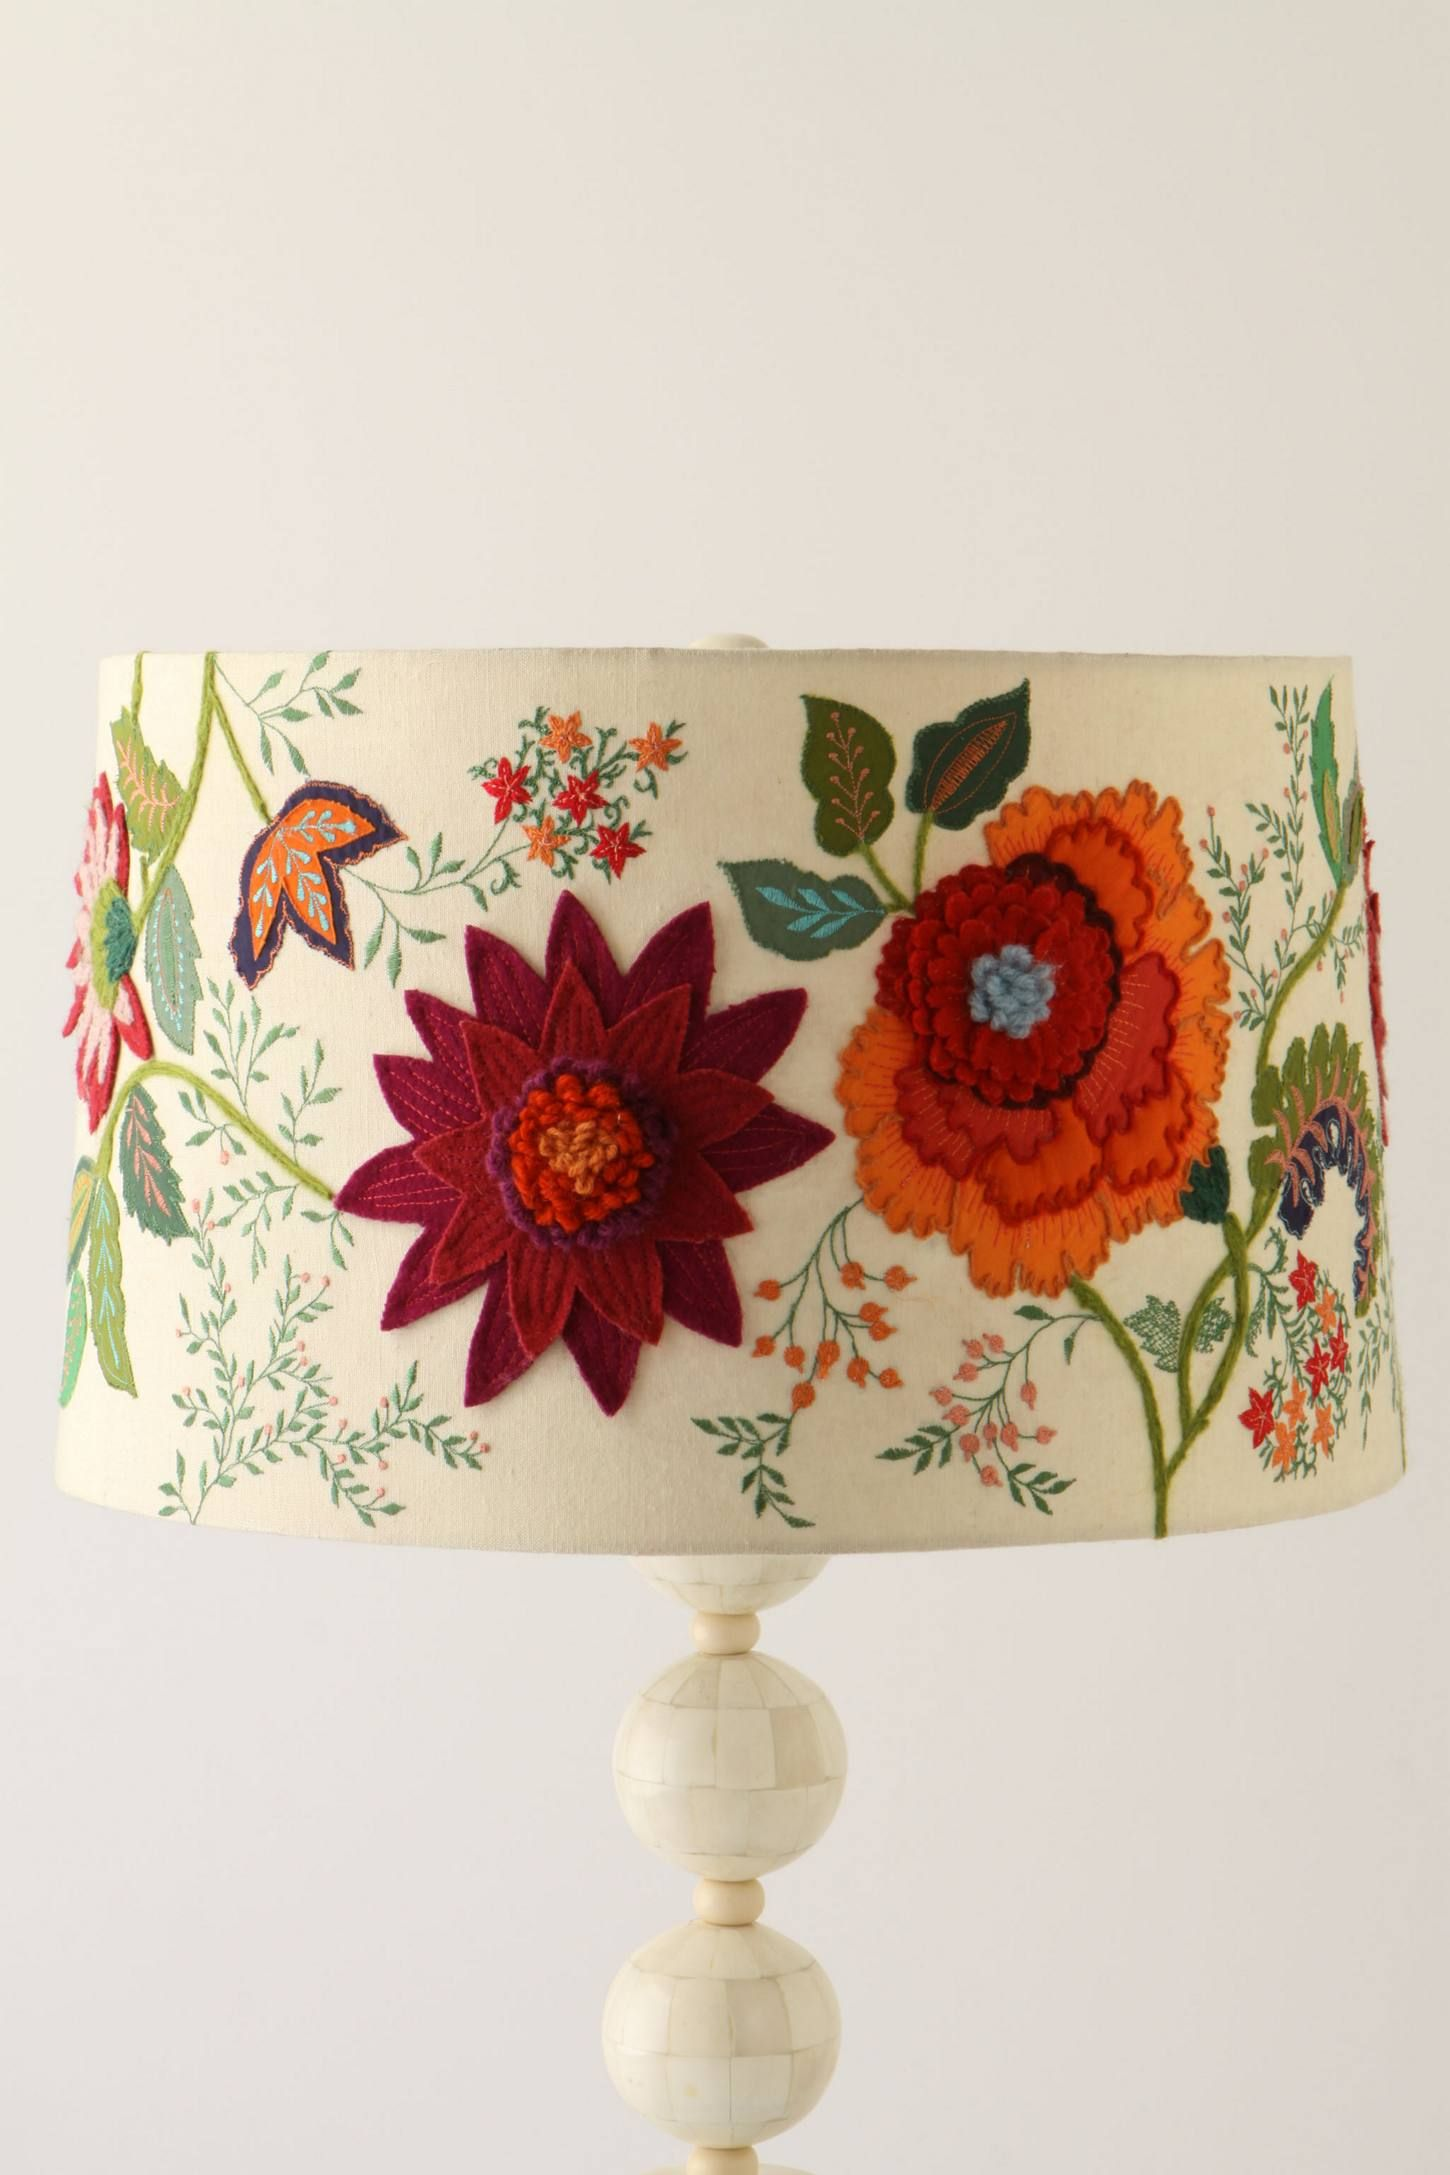 Needlework garden lamp shade needlework lamp shades and embroidery needlework garden lamp shade aloadofball Images